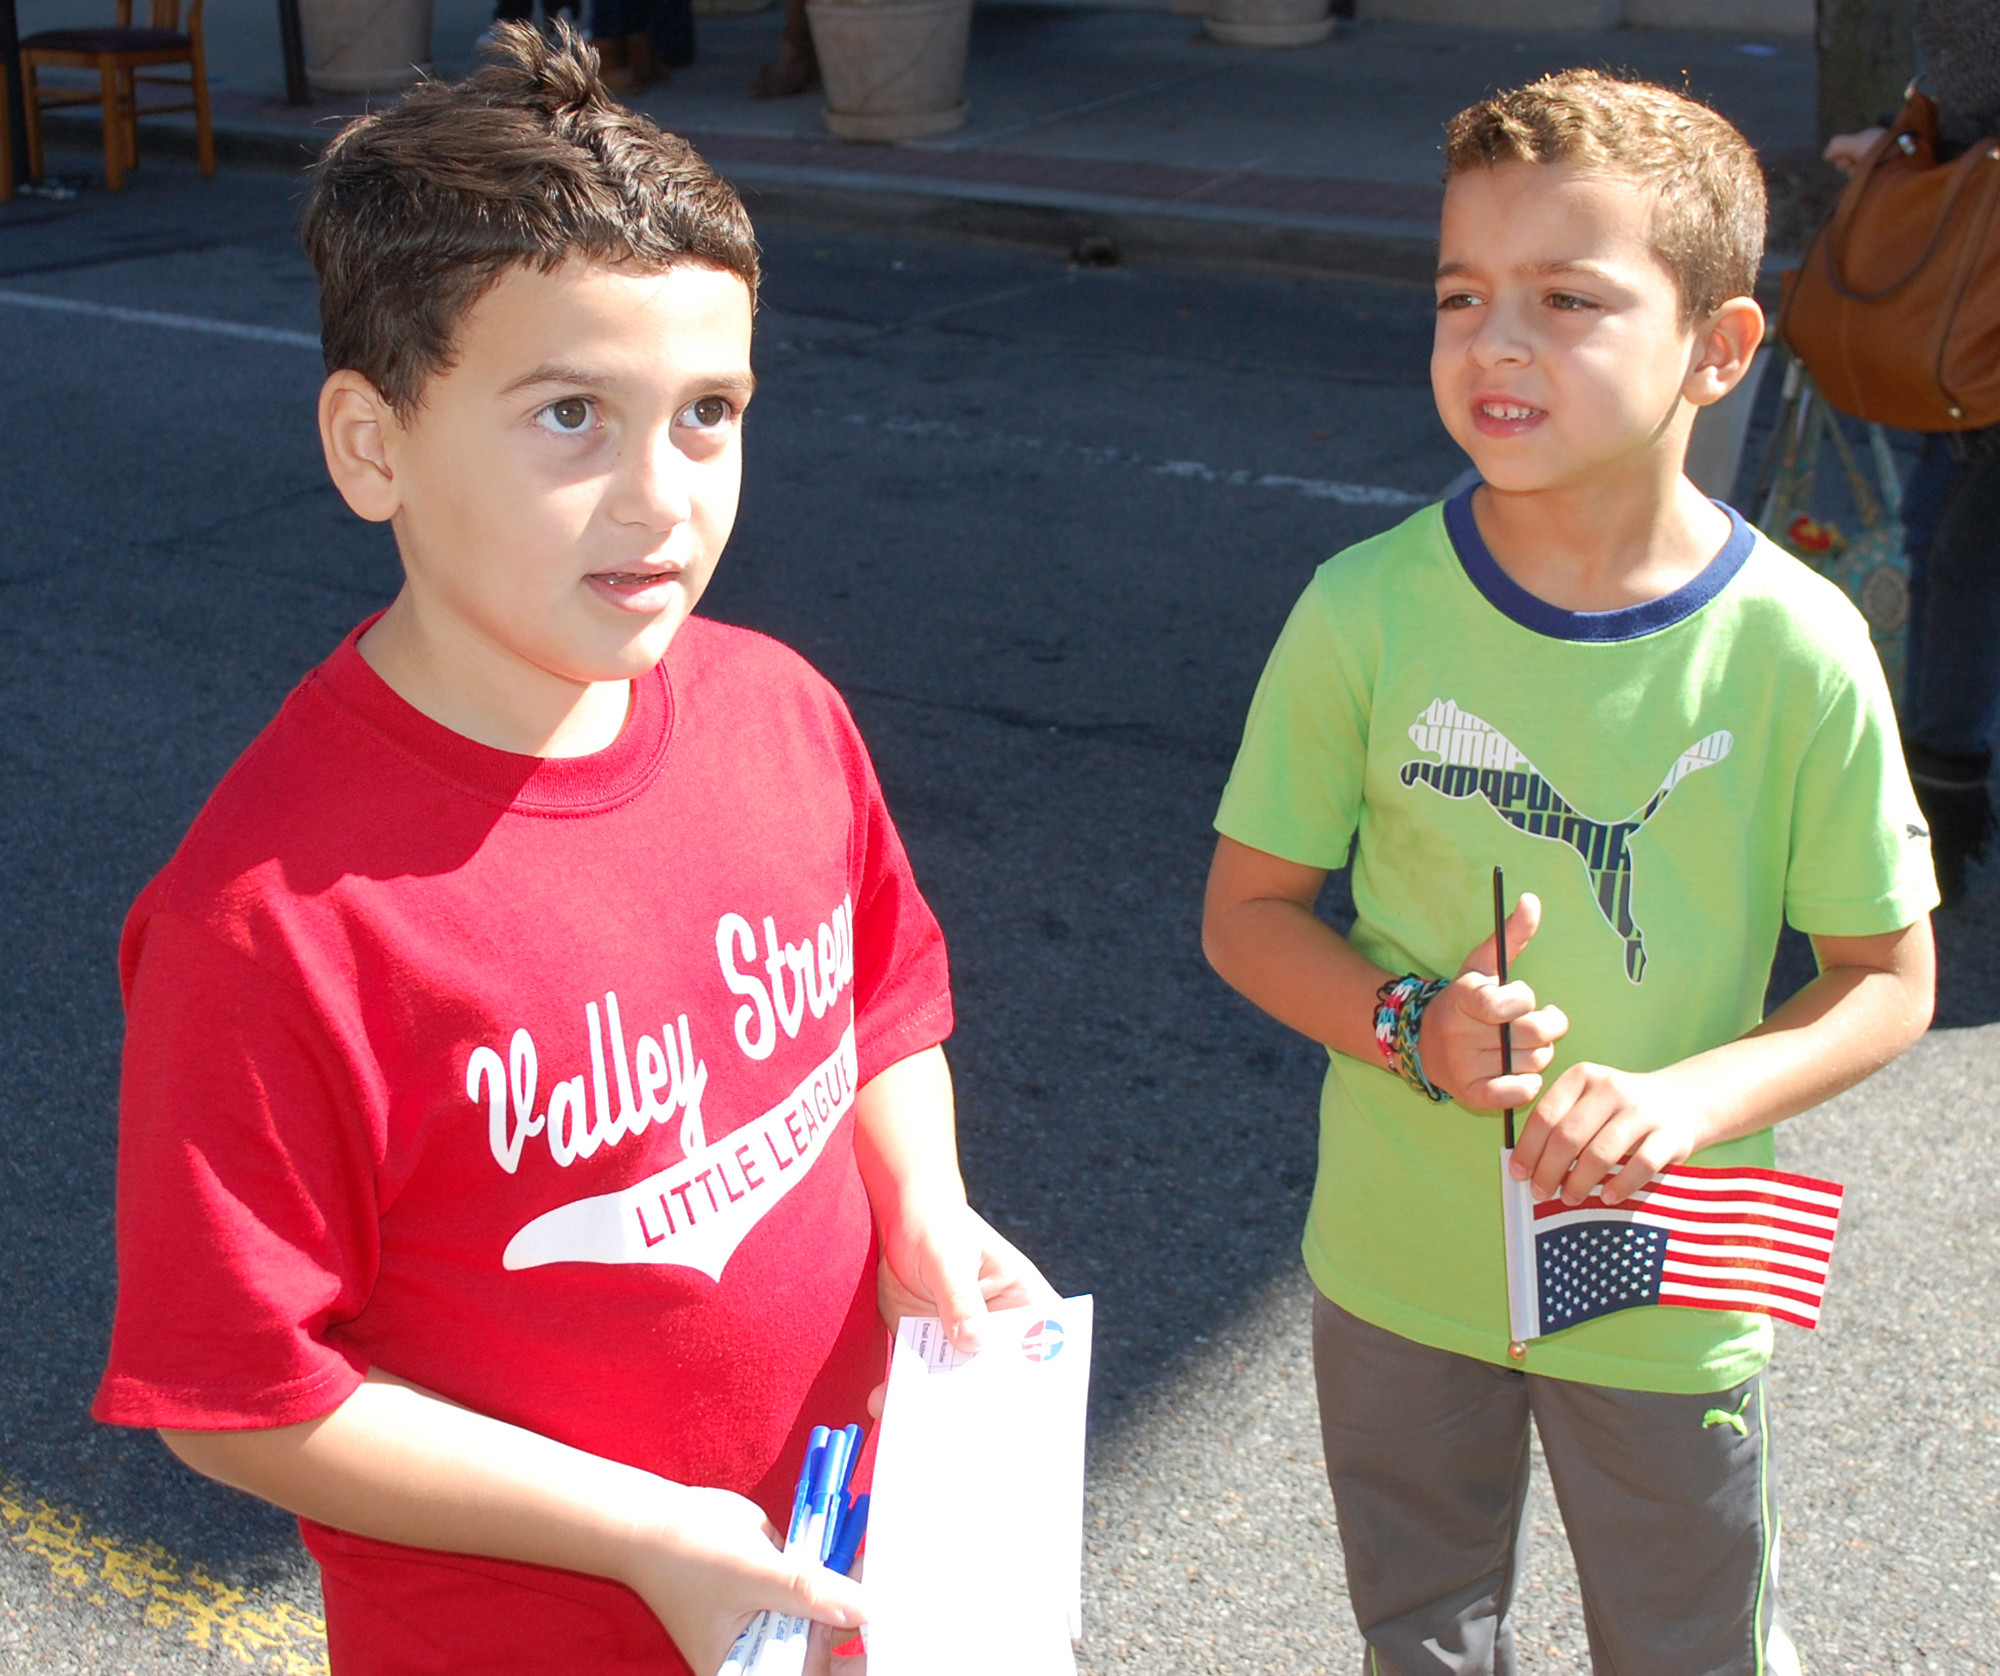 Nicholas Baez, 8, left, and Daniel Banach, 6, were signing fairgoers up for a free raffle for a chance to win a jersey from the Valley Stream Little League.